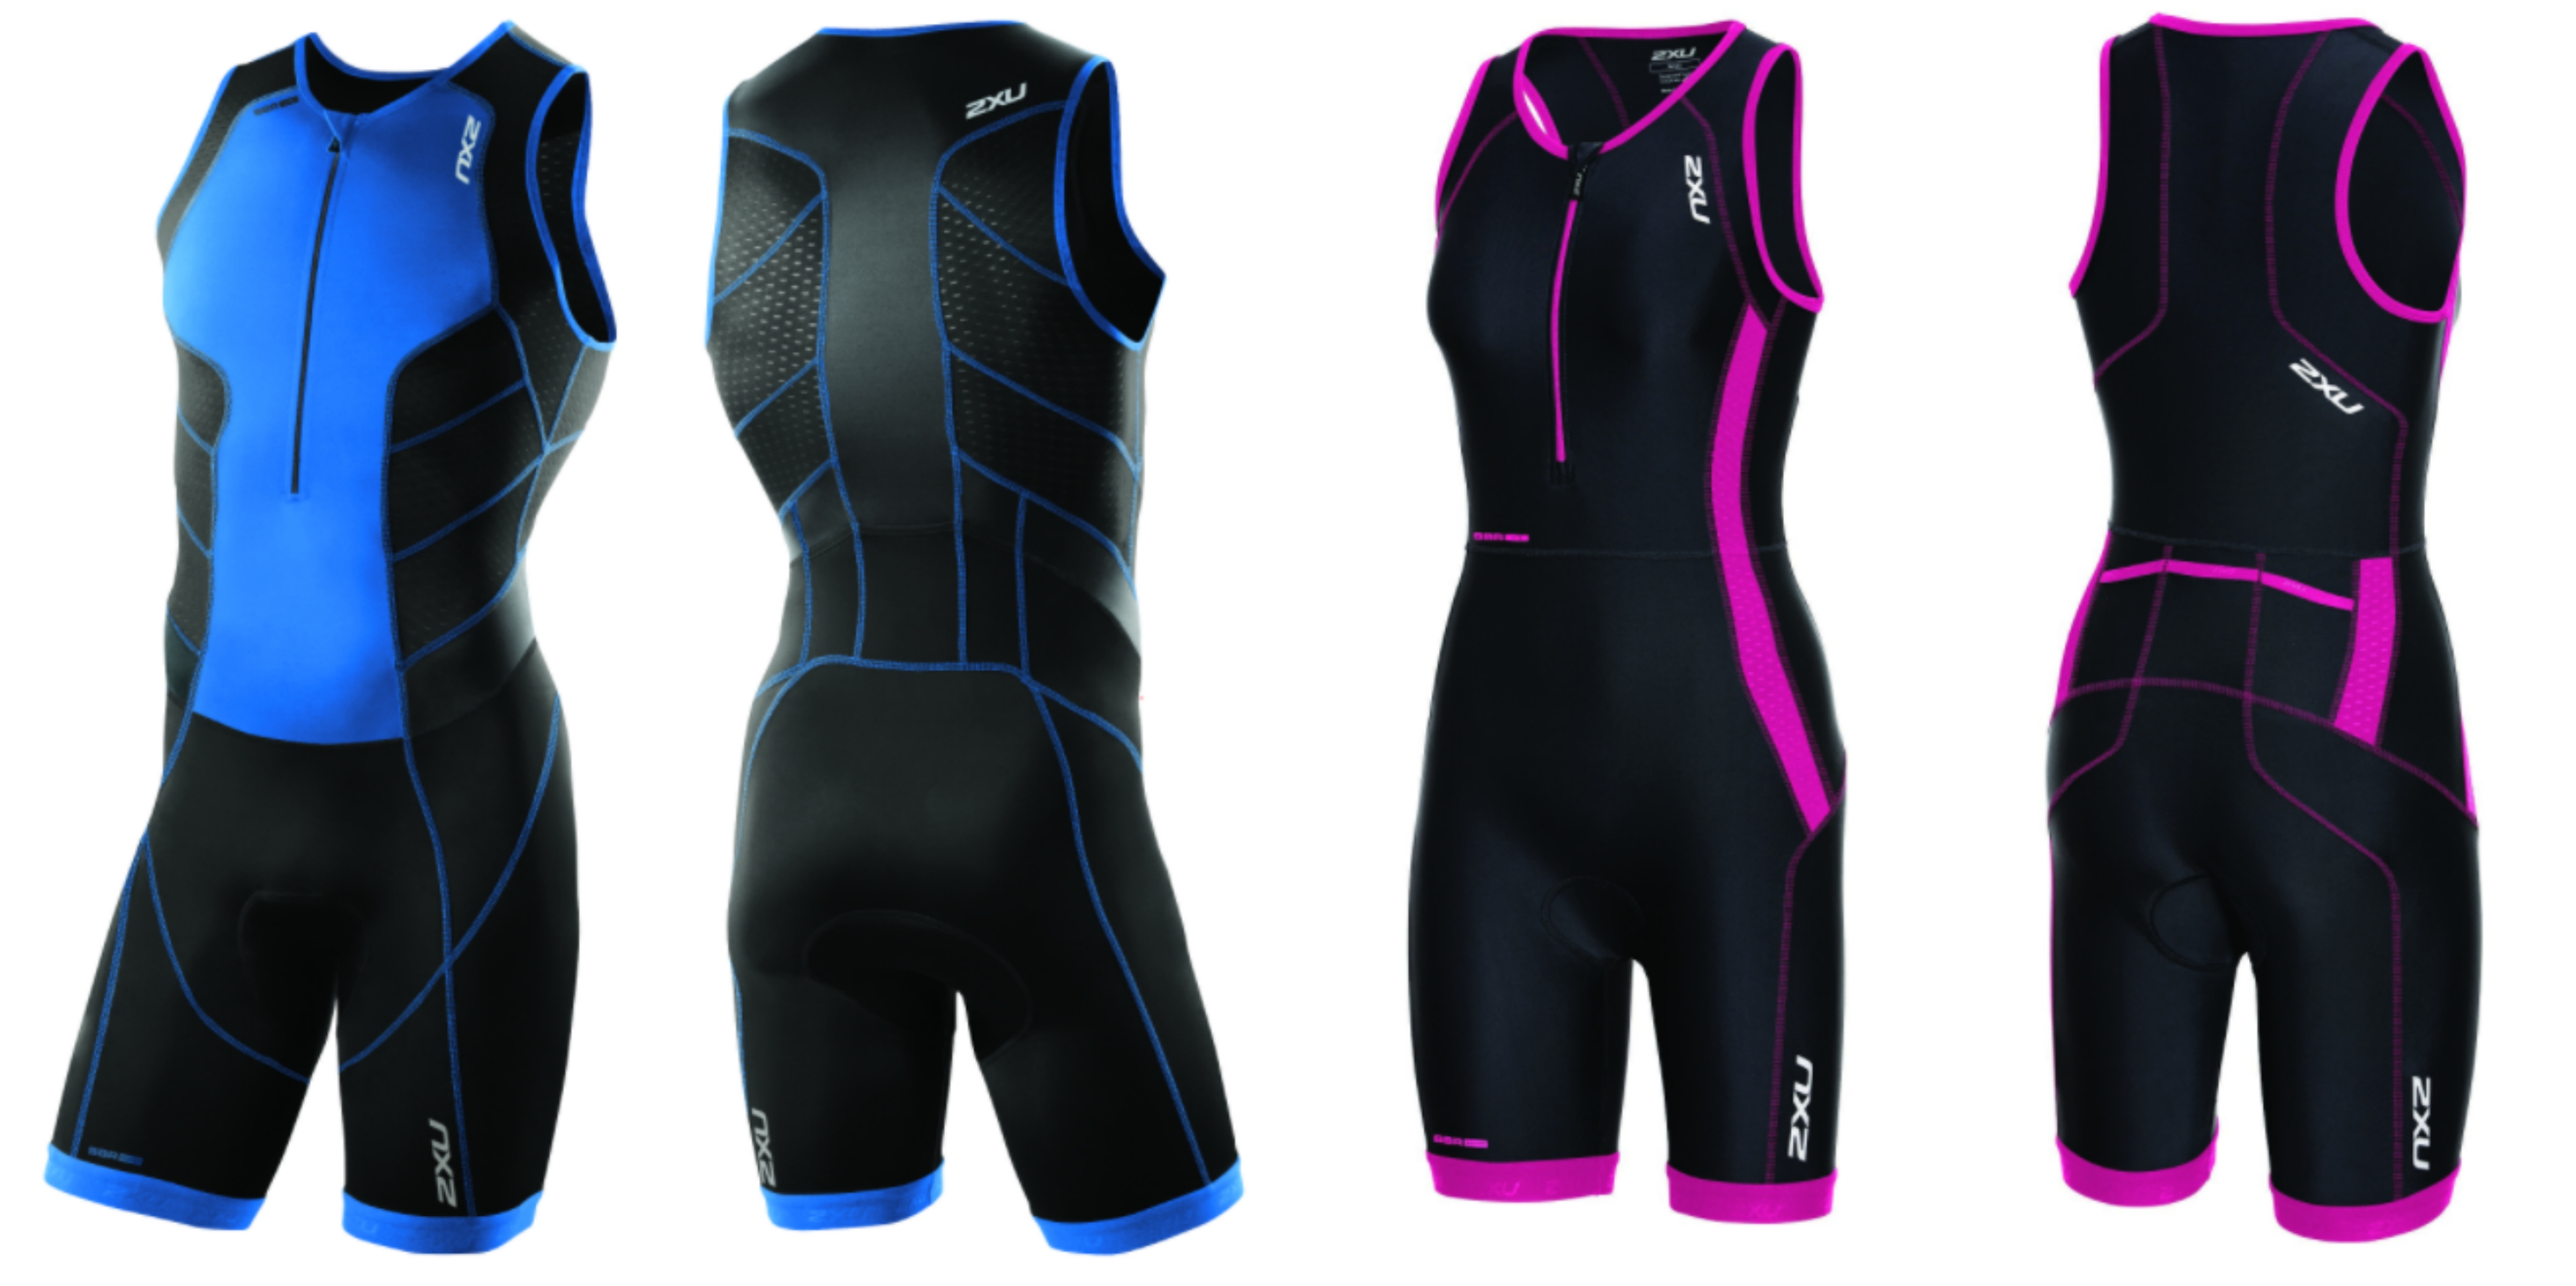 694d3dc1fd Triathlon suits: everything you need to know - Cycling Weekly